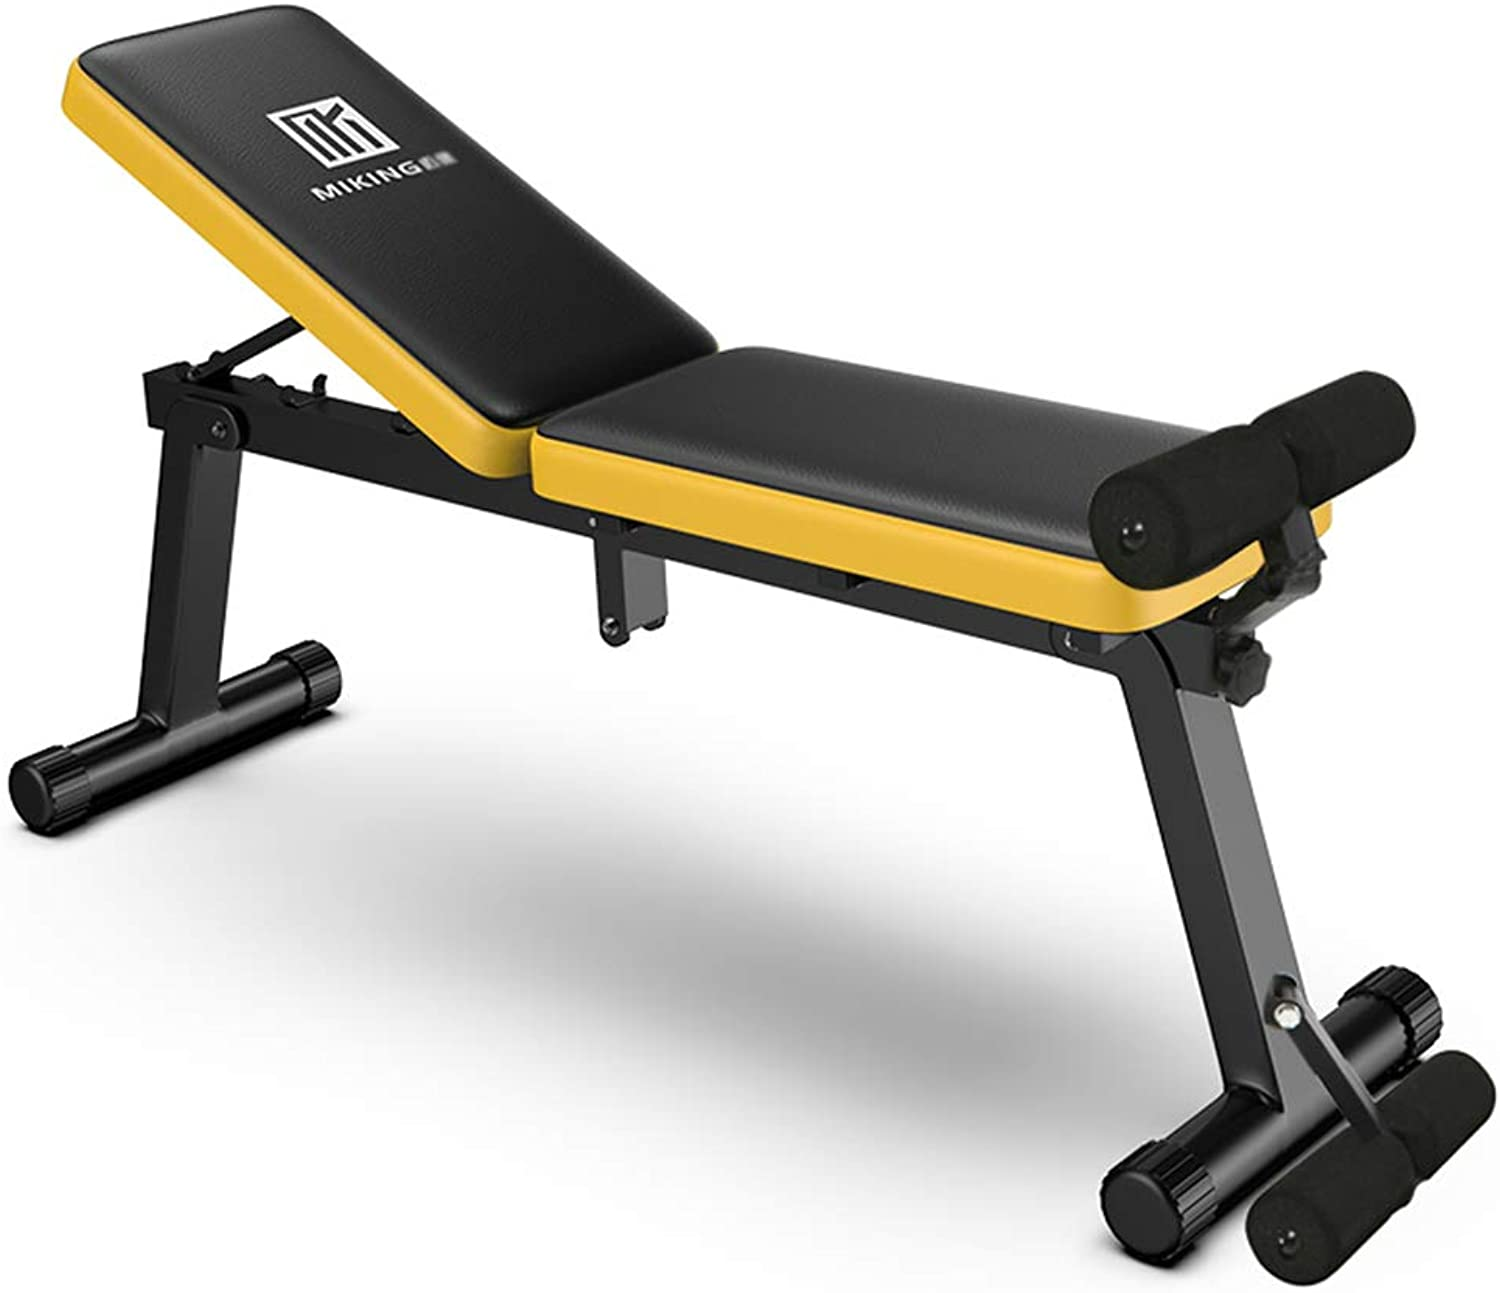 Folding Home situps Fitness Equipment MultiFunction Flying Bird Flat Bench Stool